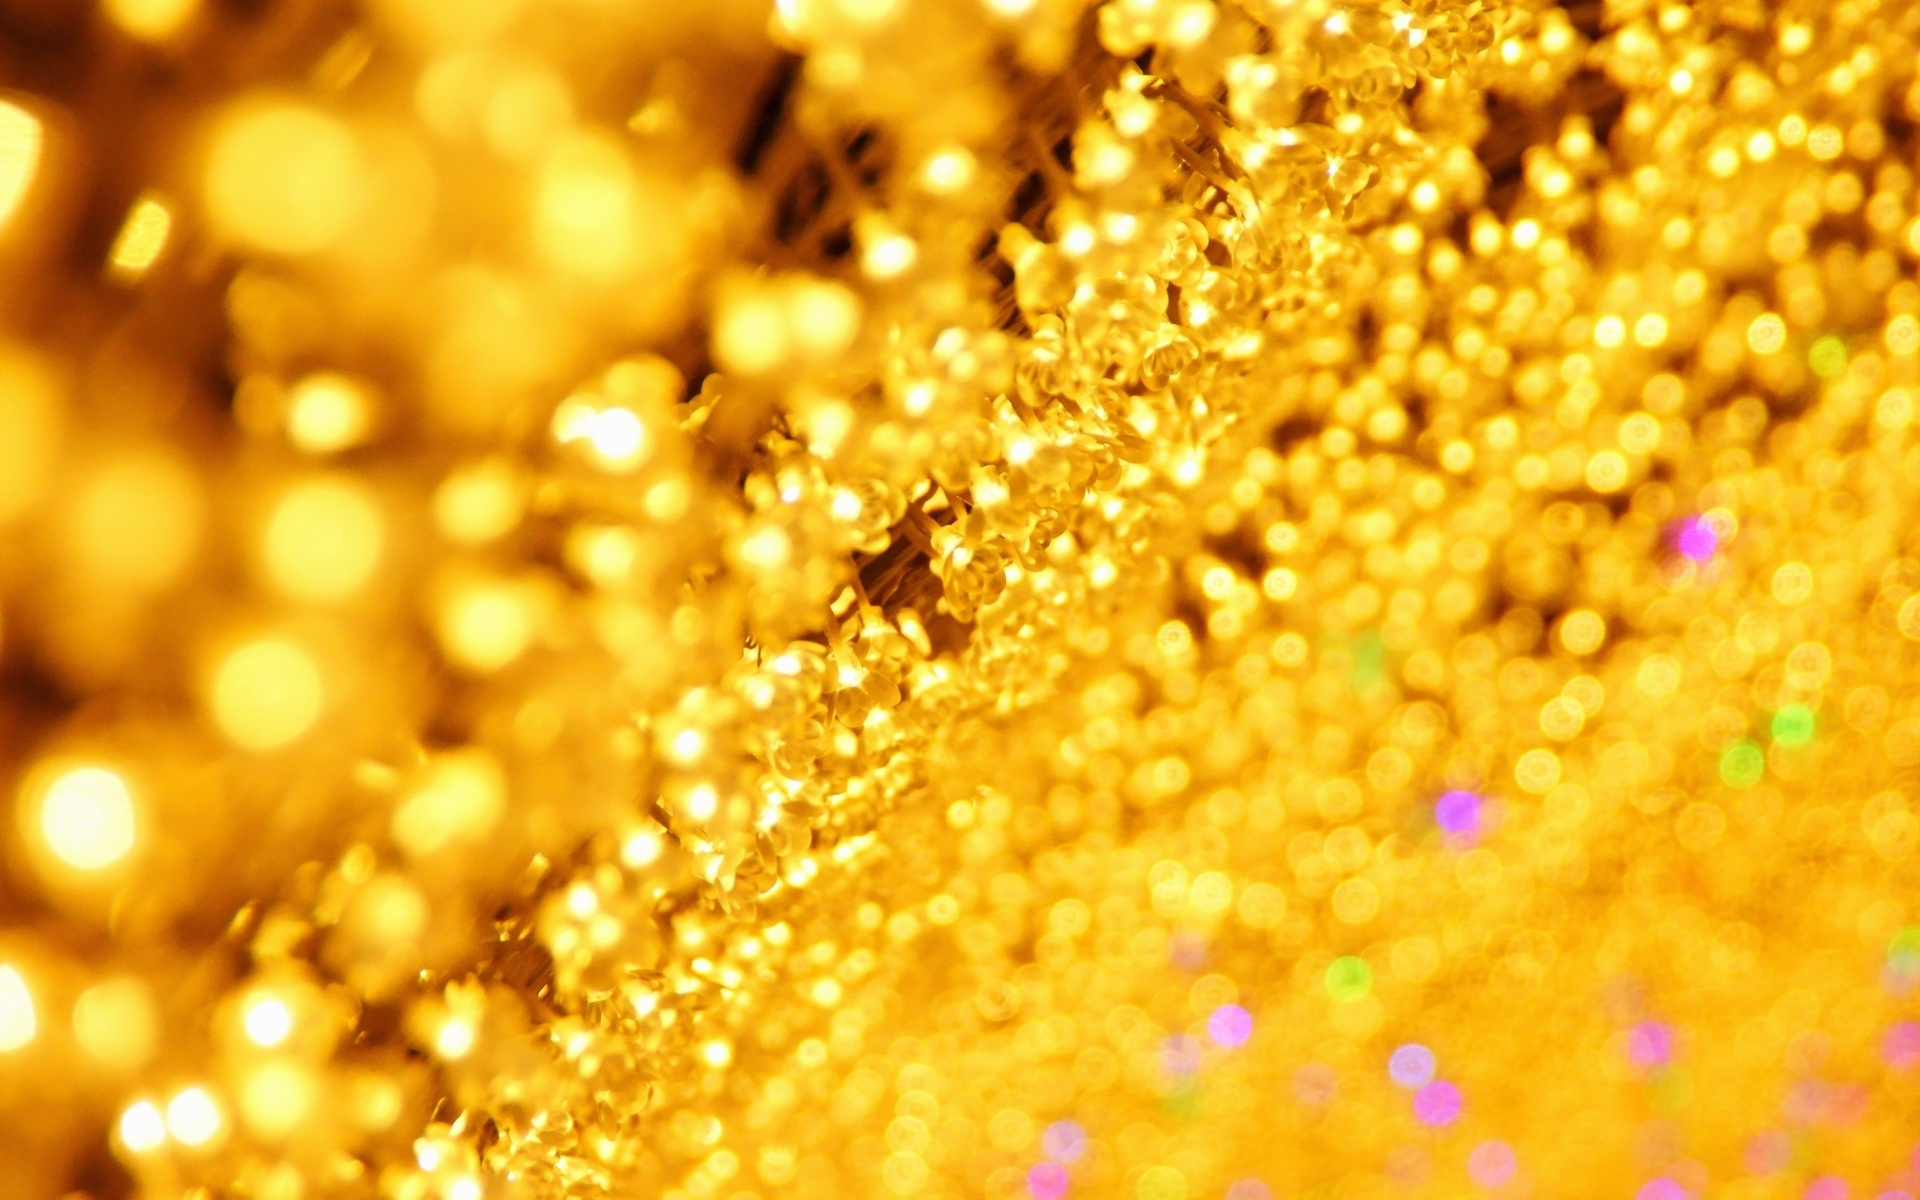 16 fantastic hd gold wallpapers - Gold desktop background ...